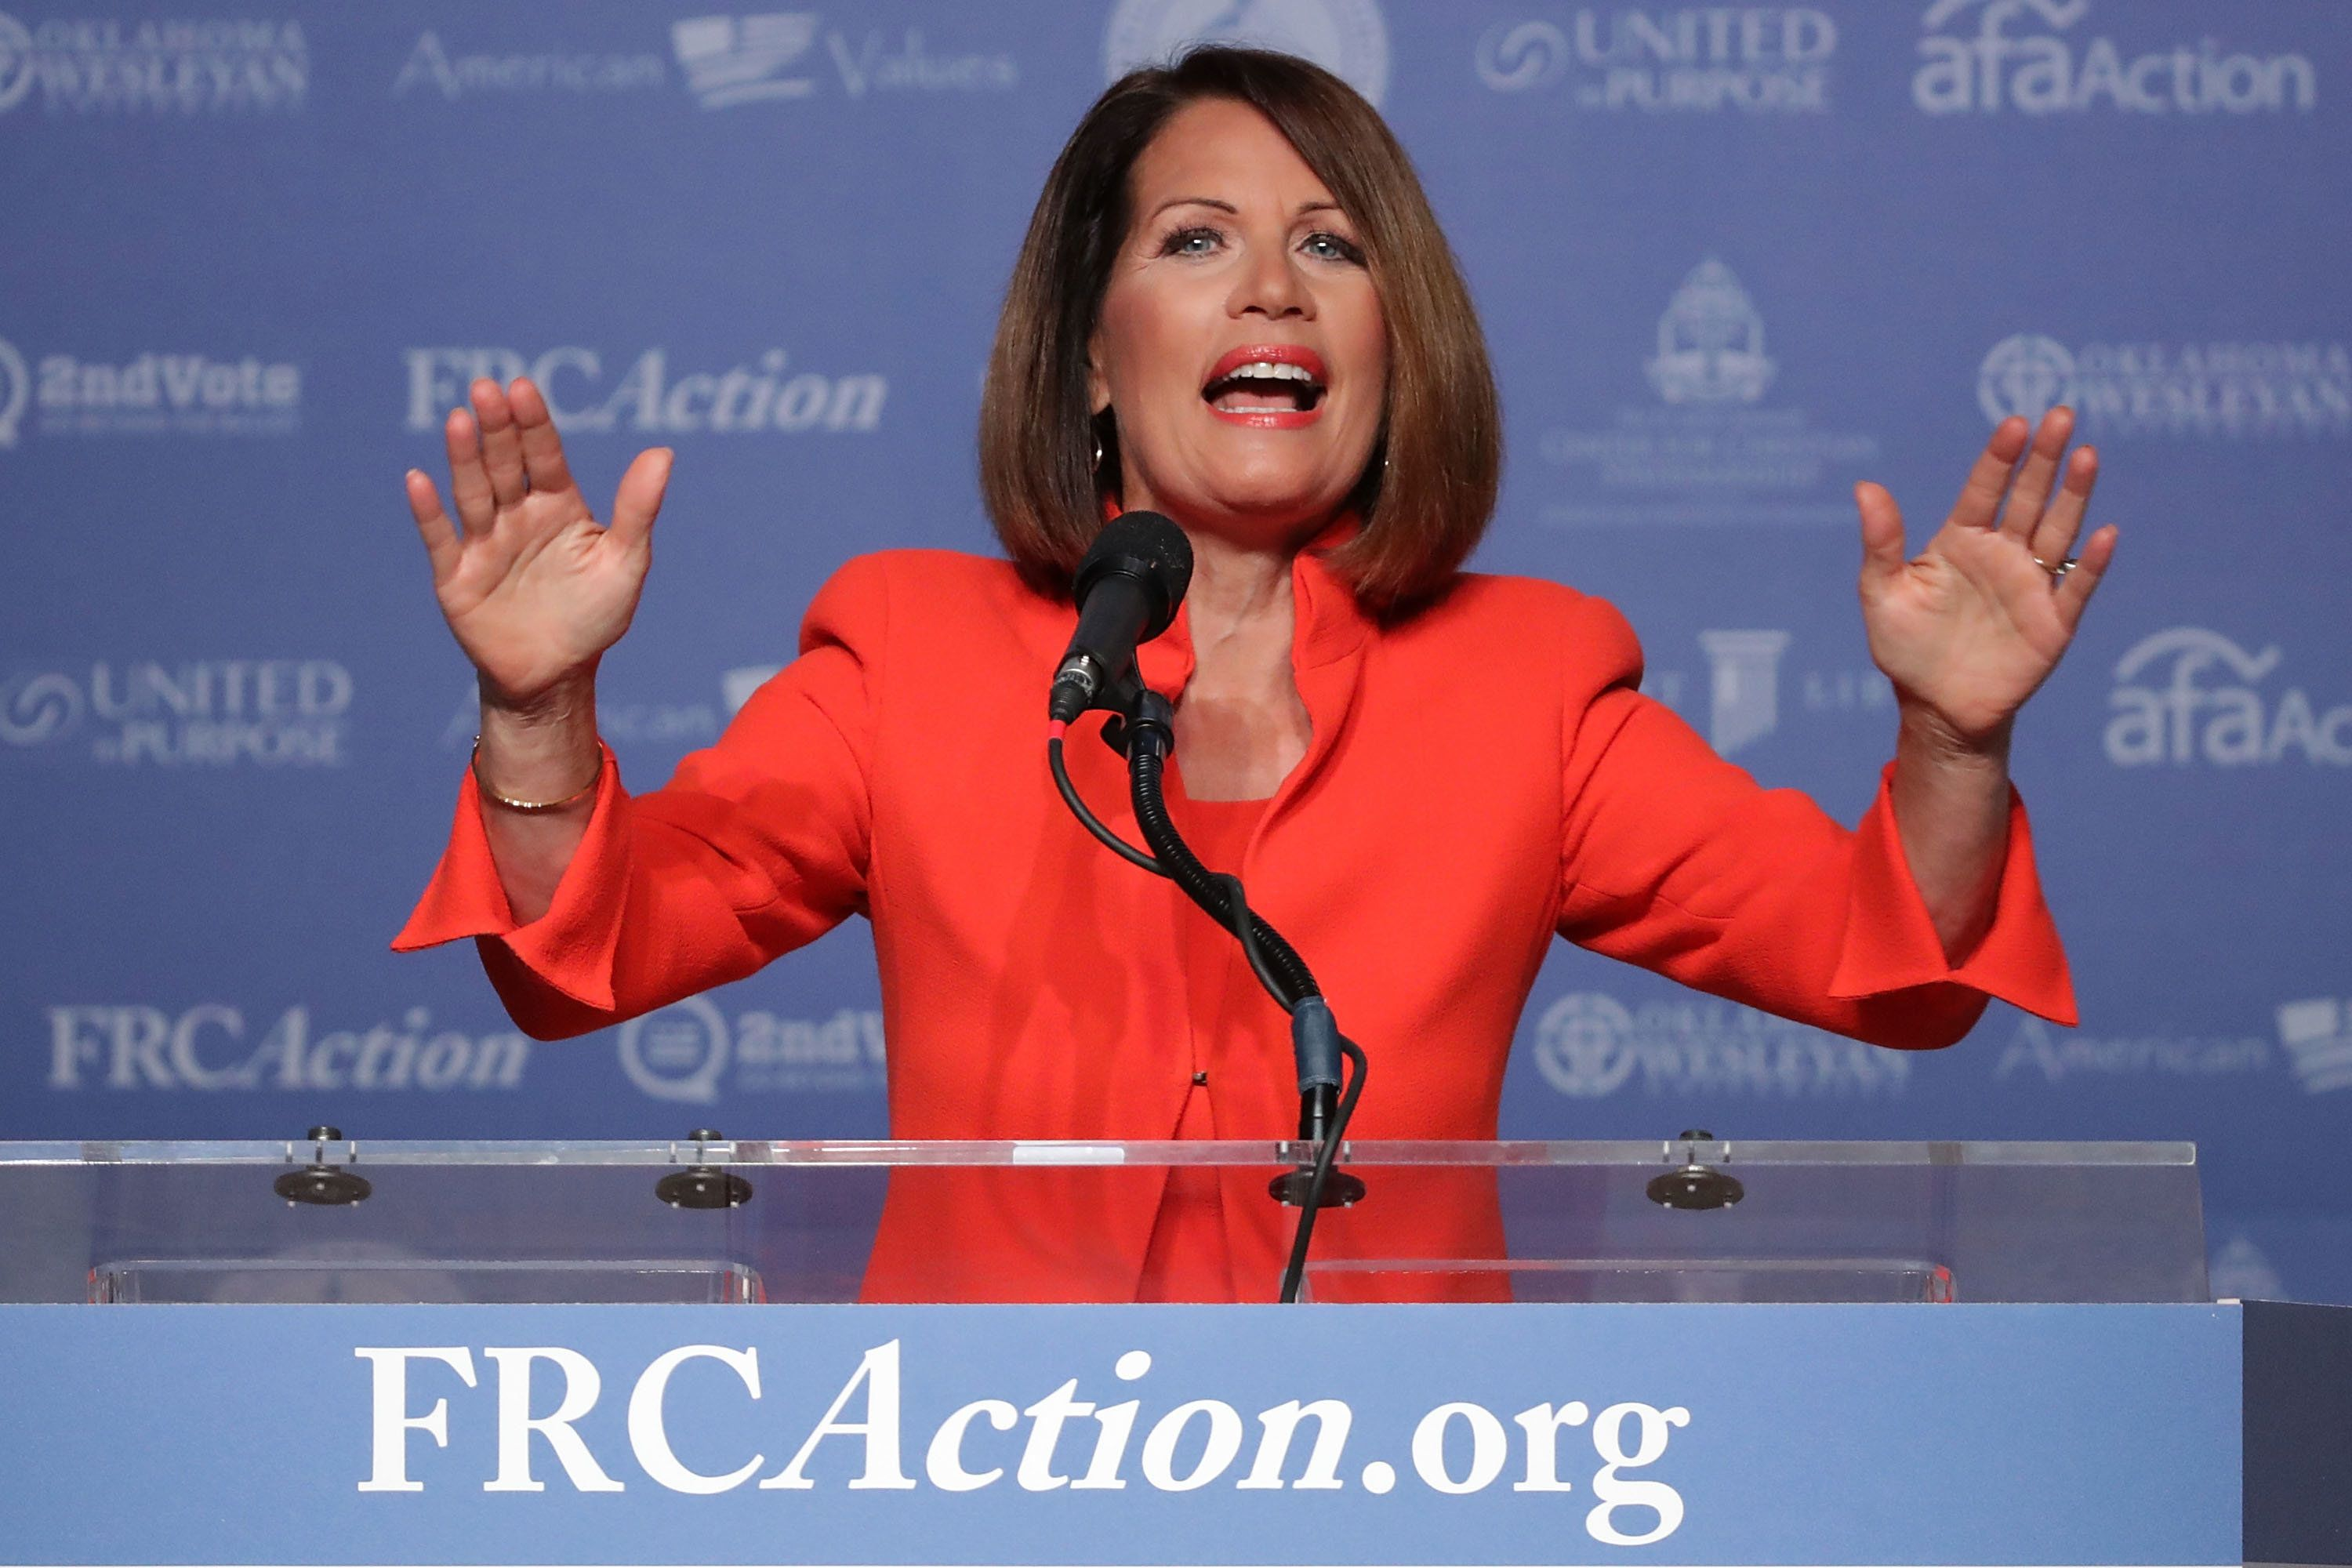 WASHINGTON, DC - SEPTEMBER 09:  Former U.S. member of congress Michele Bachmann (R-N) addresses the Values Voter Summit at the Omni Shoreham September 9, 2016 in Washington, DC. Hosted by the Family Research Council, the summit is an annual gathering of social and political conservatives. During the summit's 2015 presidential straw poll, Republican presidential candidate Donald Trump placed fifth with only 5% of the vote.  (Photo by Chip Somodevilla/Getty Images)